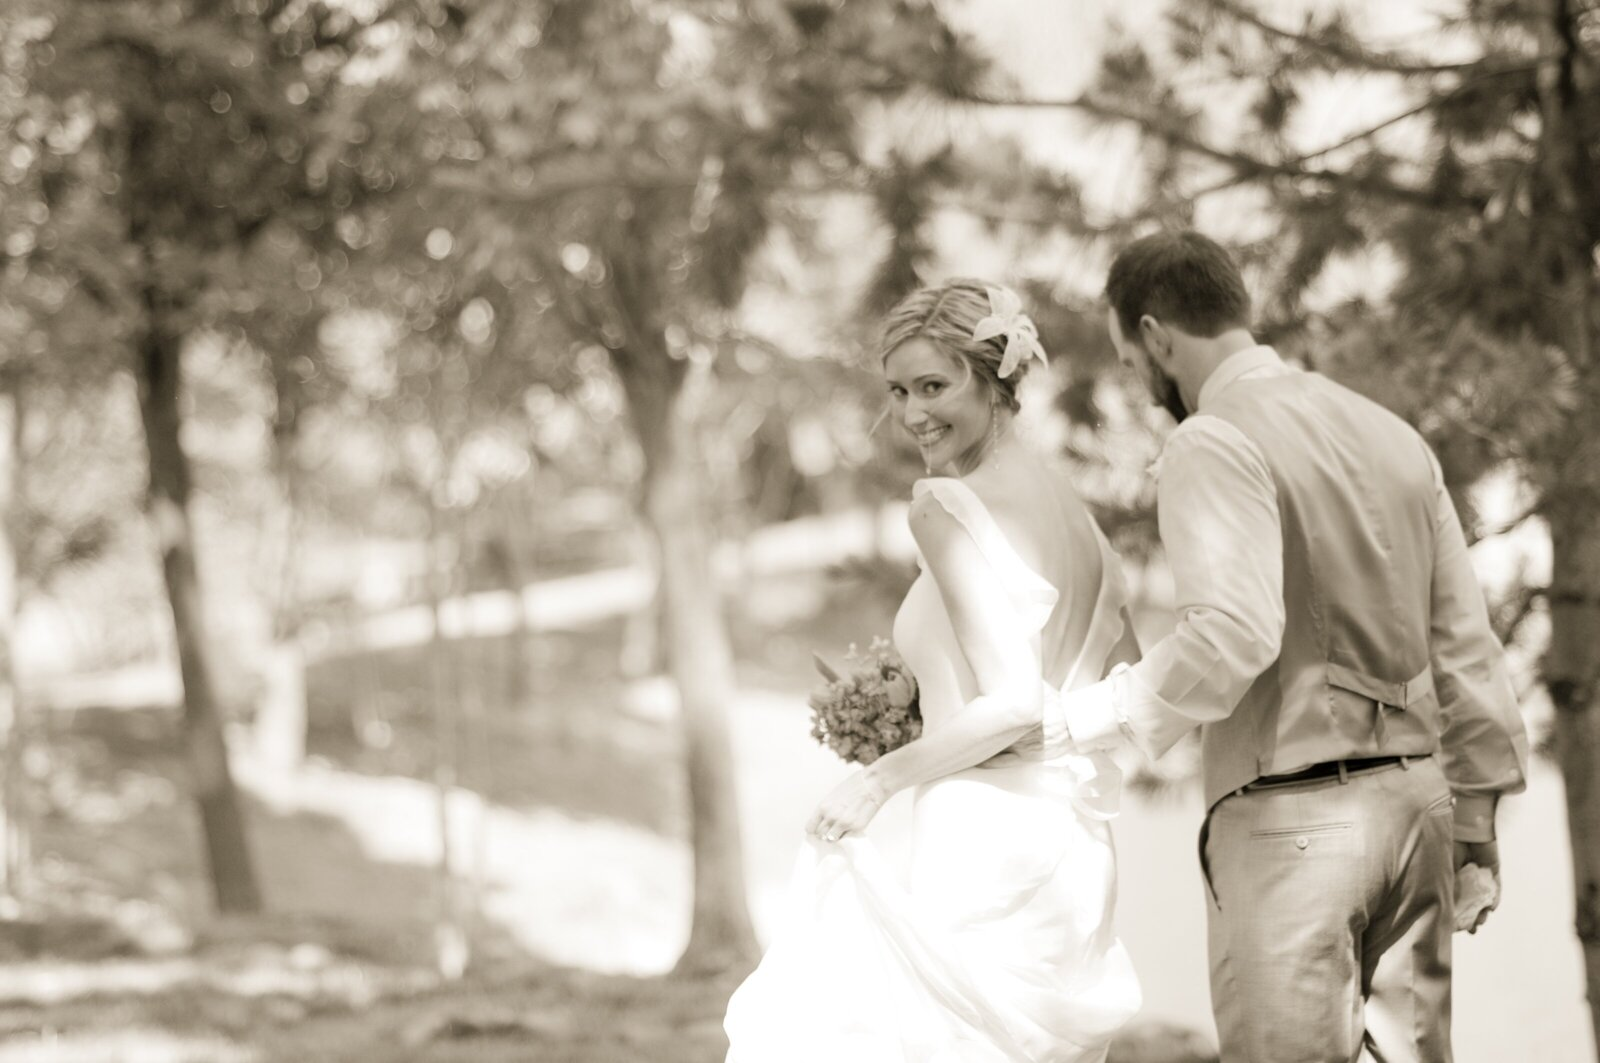 Jen+ Review+_+christinaleighevents.com+_+McGraw+Barn+Weddings+_+Christina+Leigh+Events+Wedding+Planning+and+Design+_+Candi+Coffman+Photography+_+Tulsa+Oklahoma+Wedding+Coordination+and+Planning++1